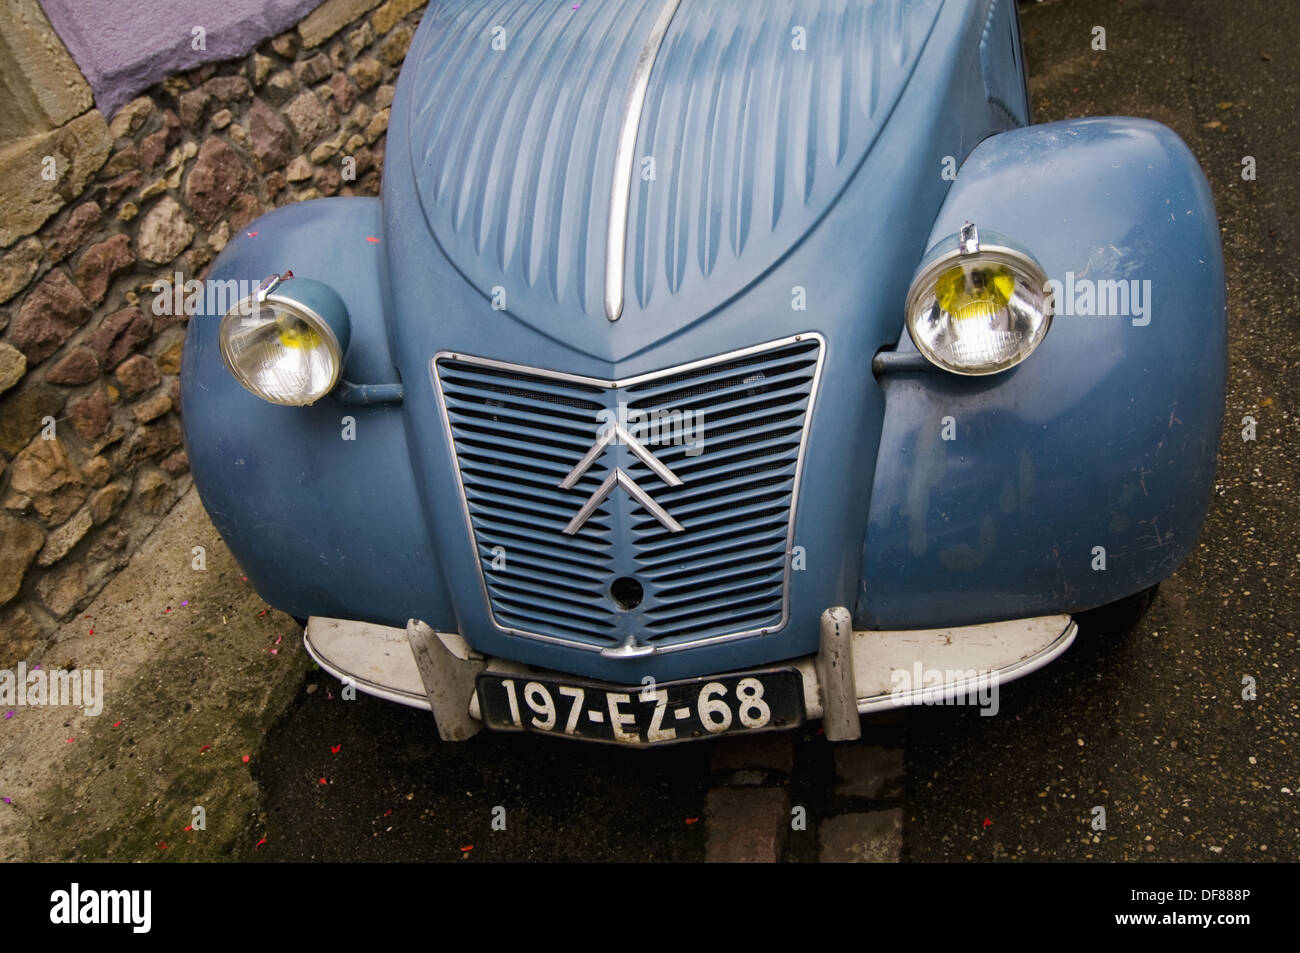 Bonnet, headlights and registration plate of an old Citroen 2CV ...